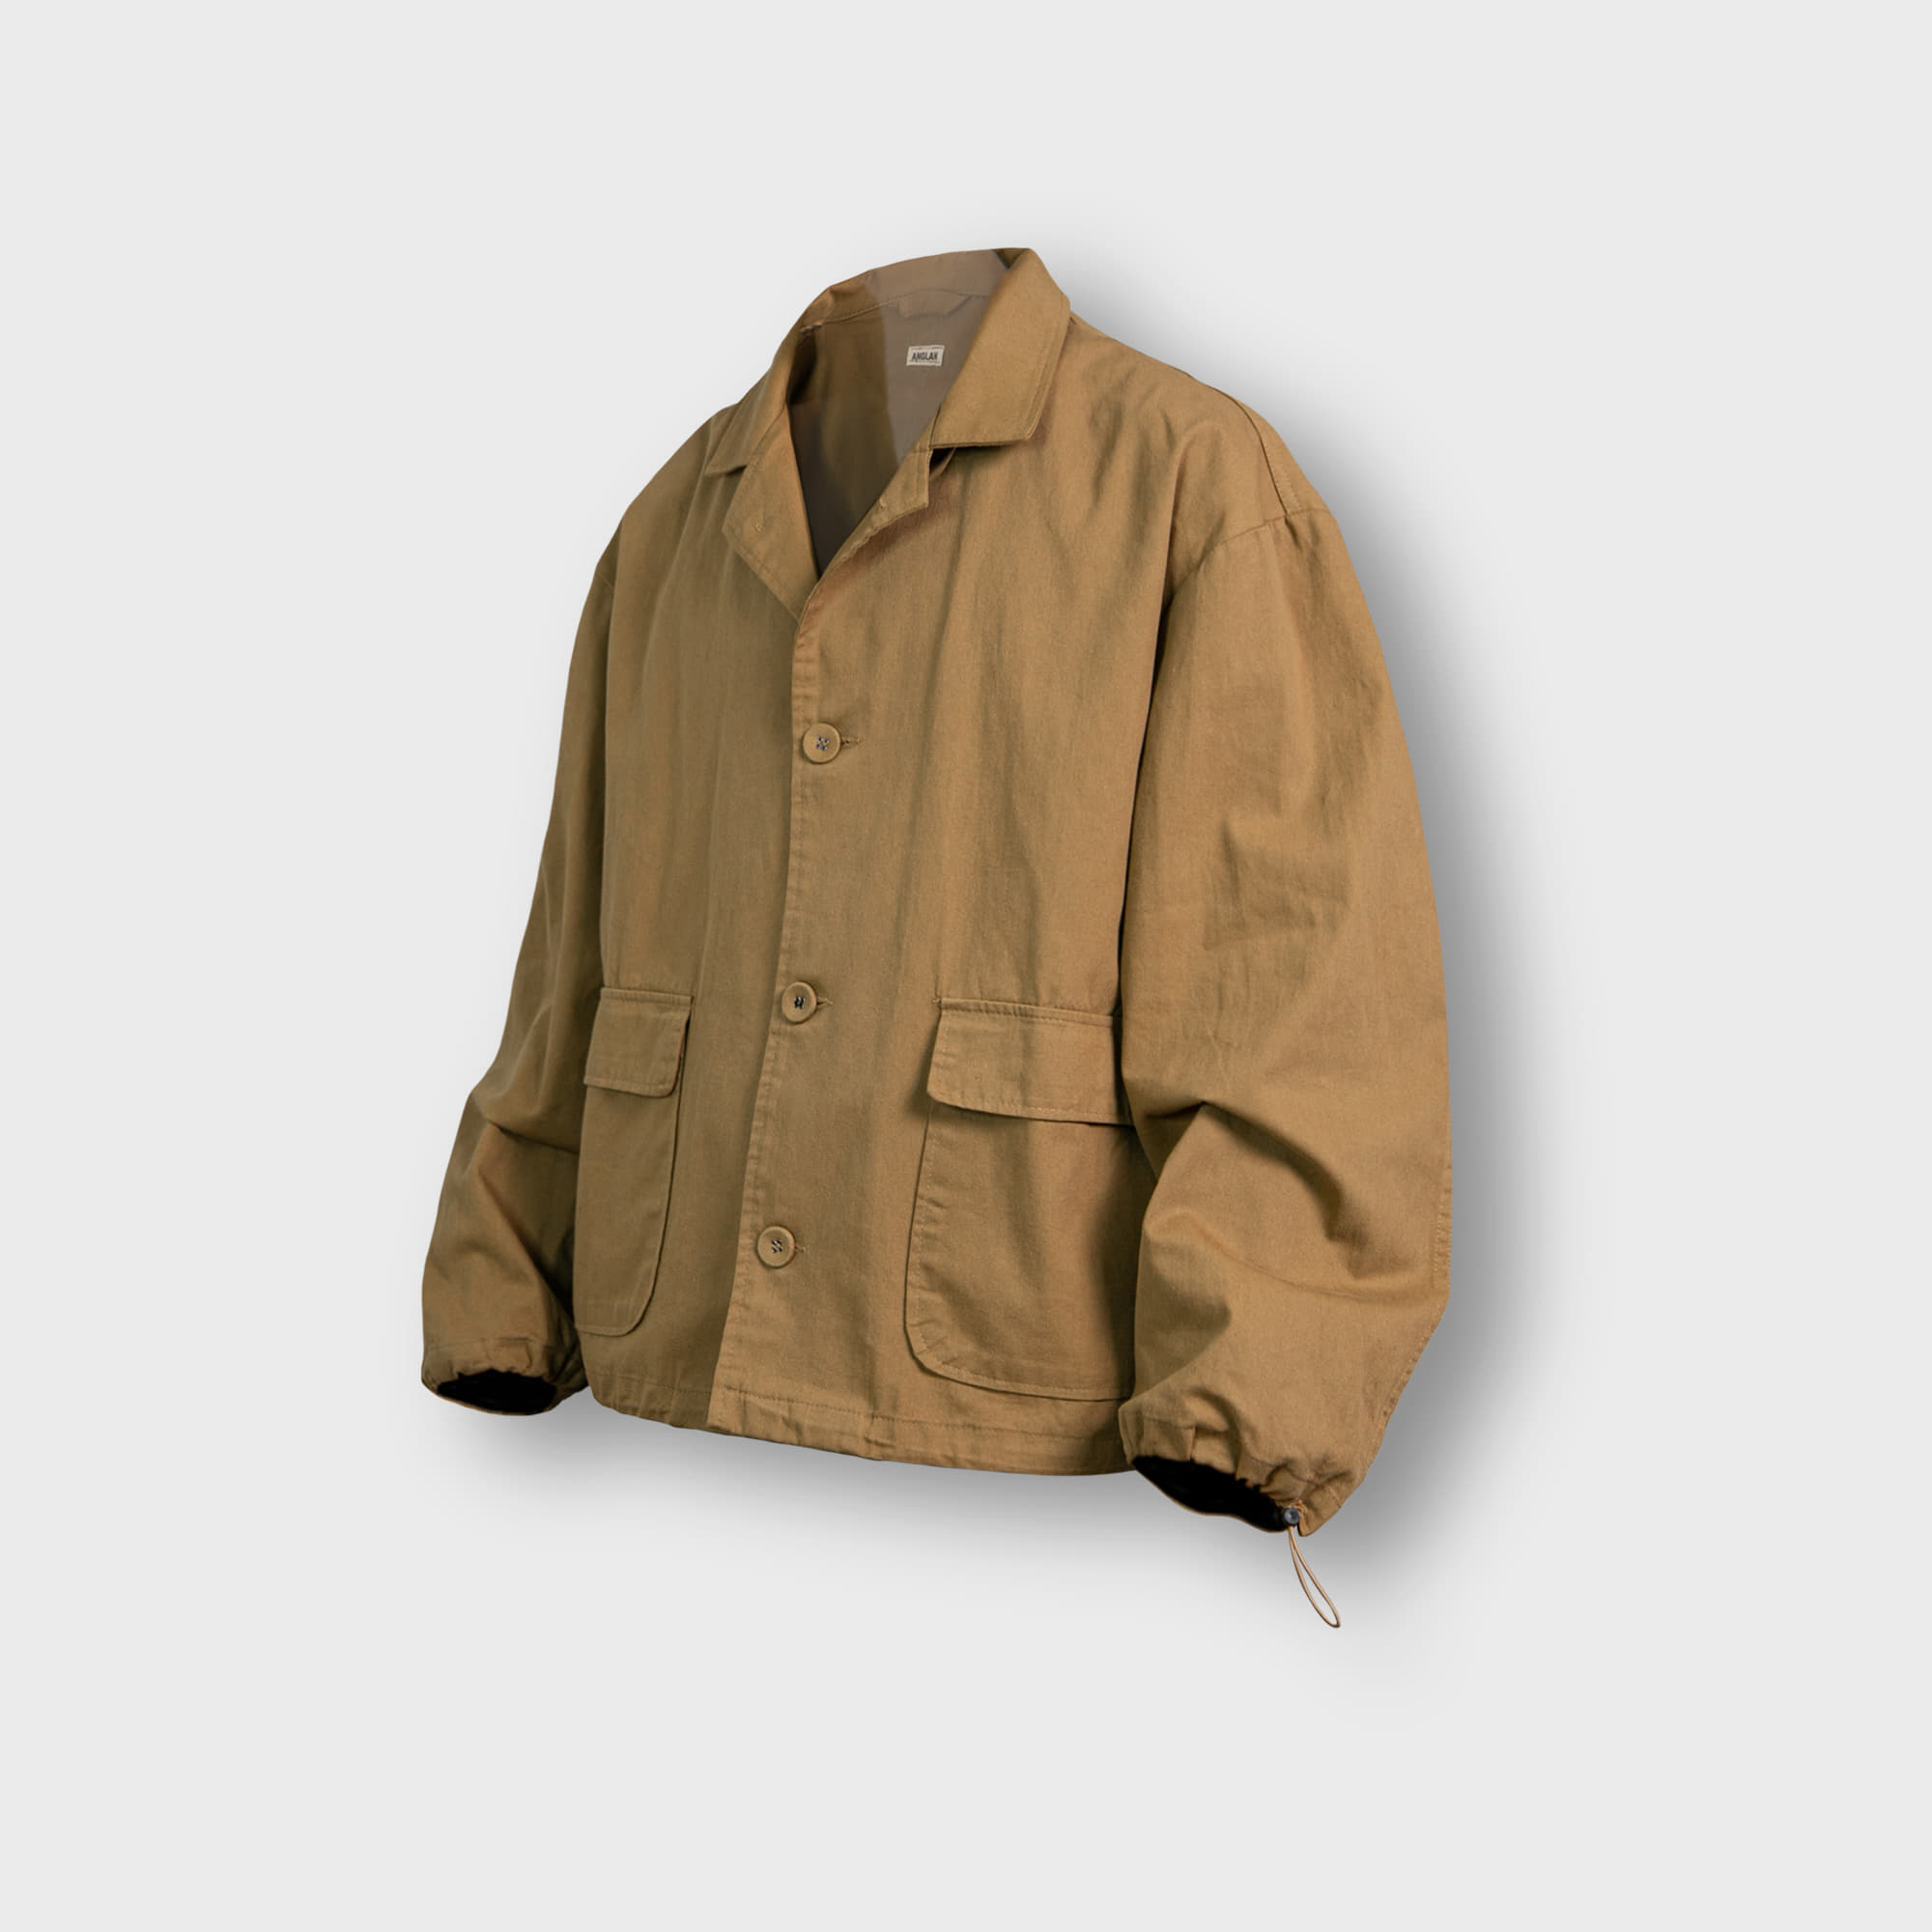 [AG] Twill Cotton String Shirt Jacket - Beige